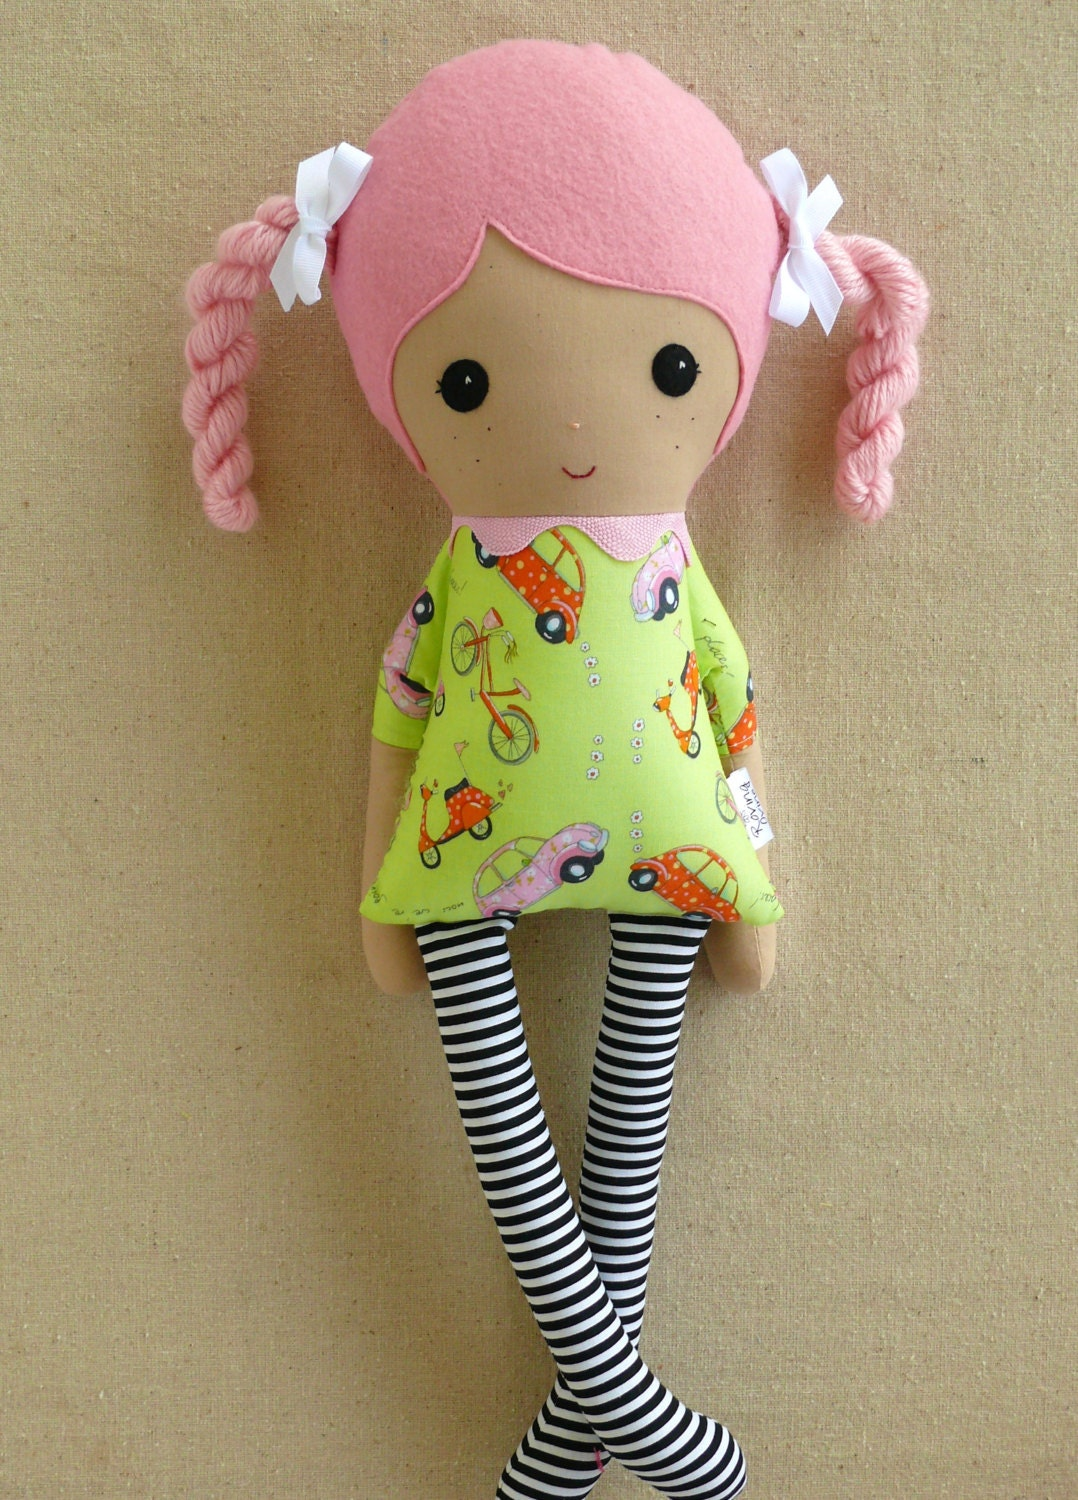 Fabric Doll Rag Doll Pink Haired Girl with Braids in Retro Car Print Dress